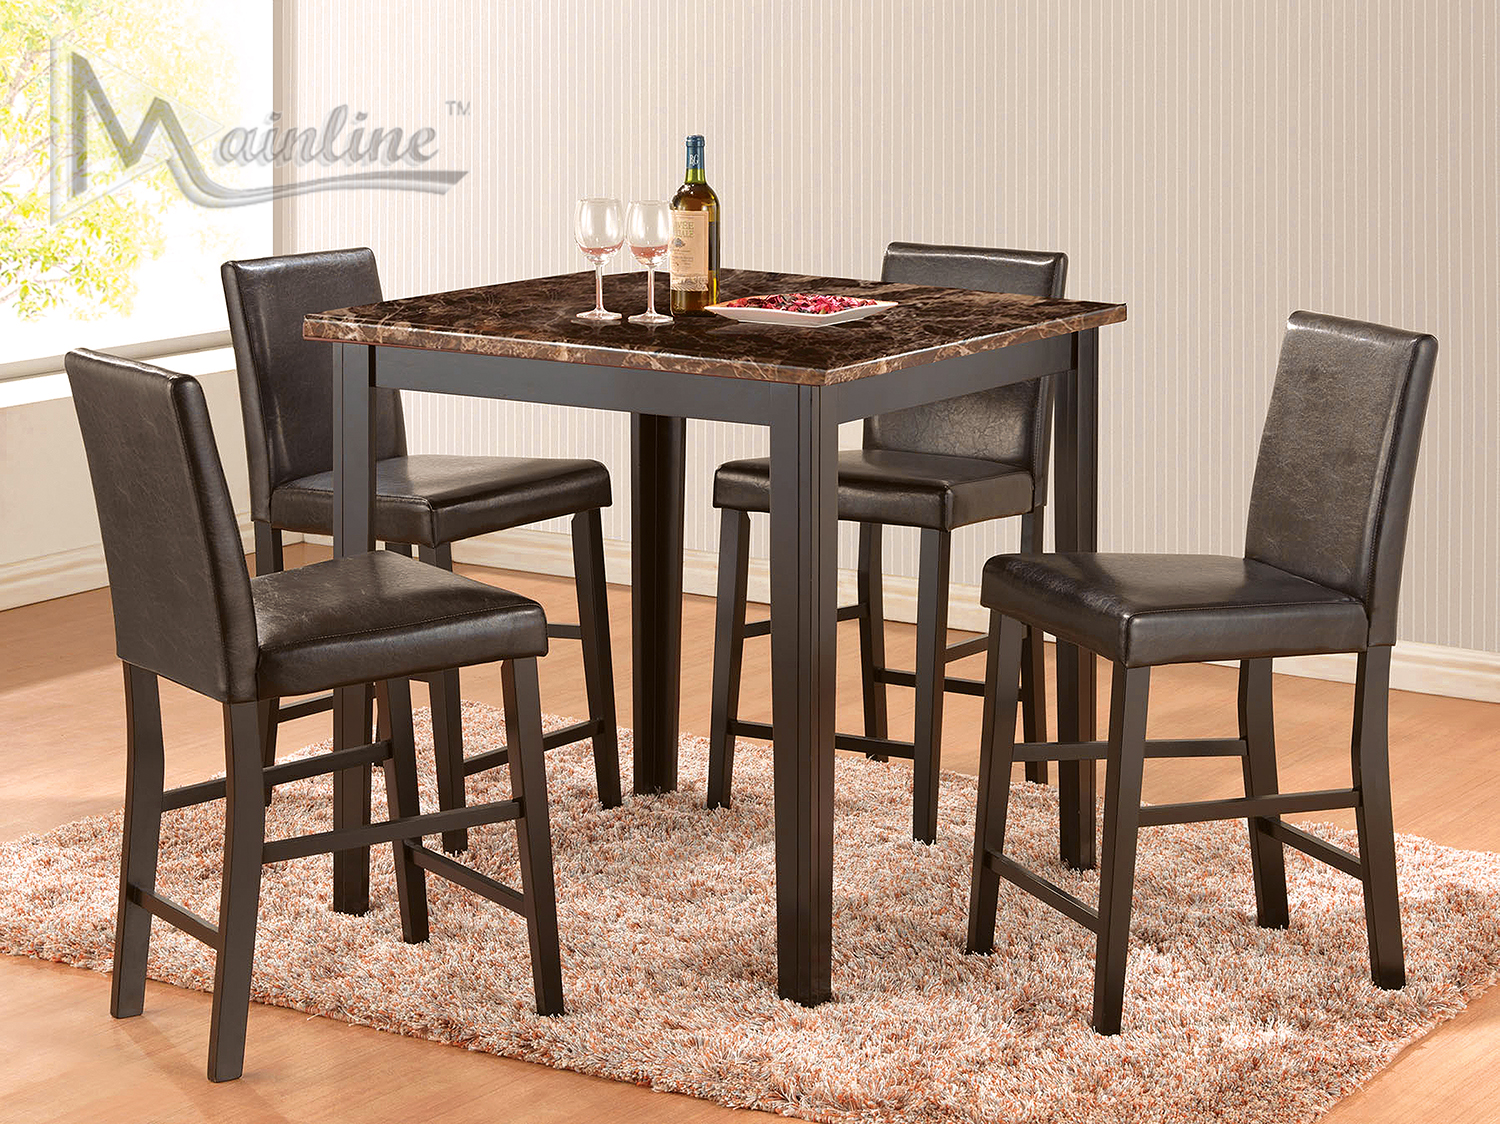 Dinette Set - Hightop with Modern Leather Chairs